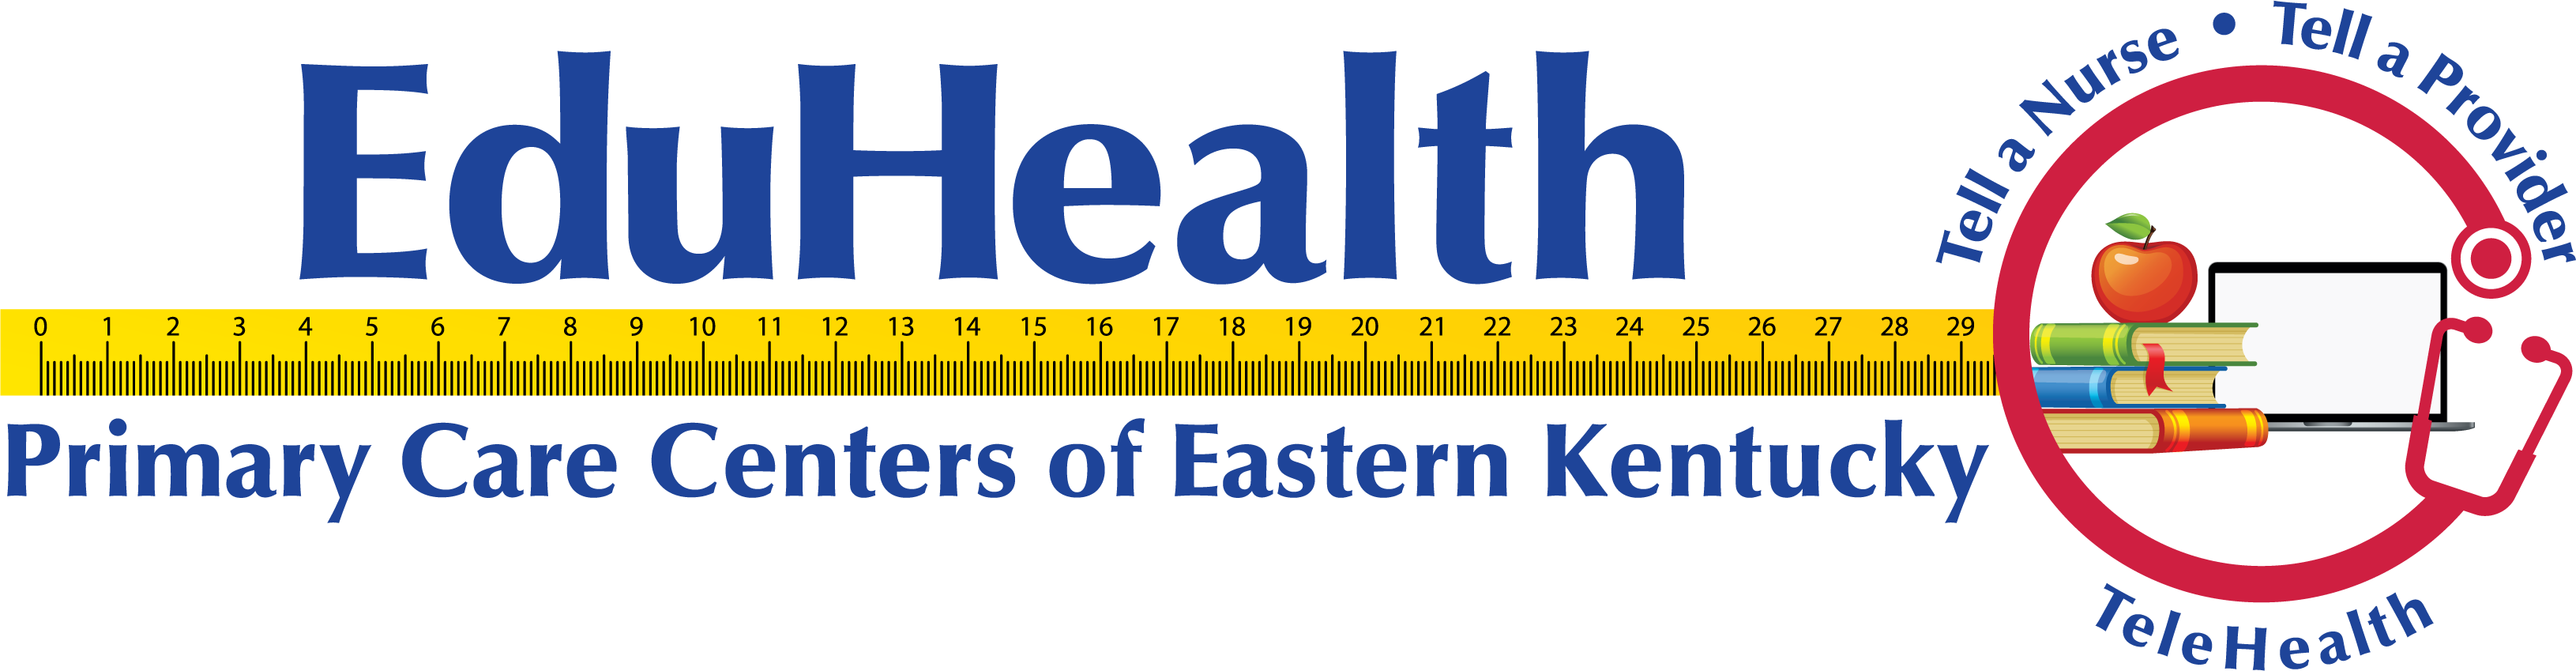 Sponsor - Primary Care Centers of East Kentucky